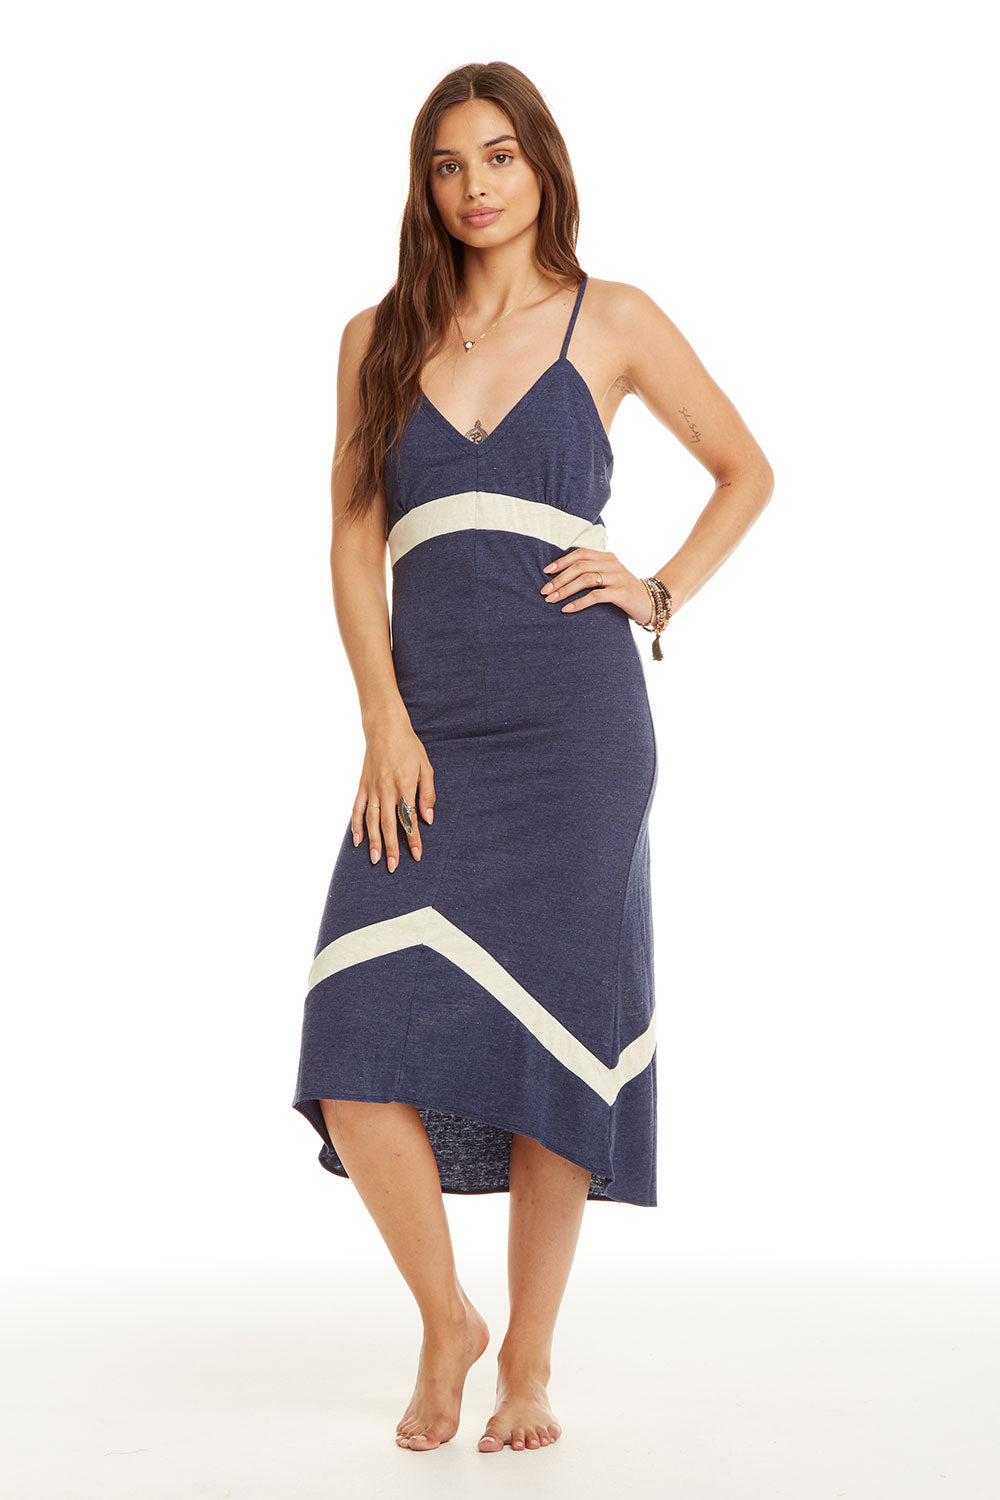 c80193182a1 Blocked Jersey Strappy Chevron Insert Midi Dress - chaserbrand.com